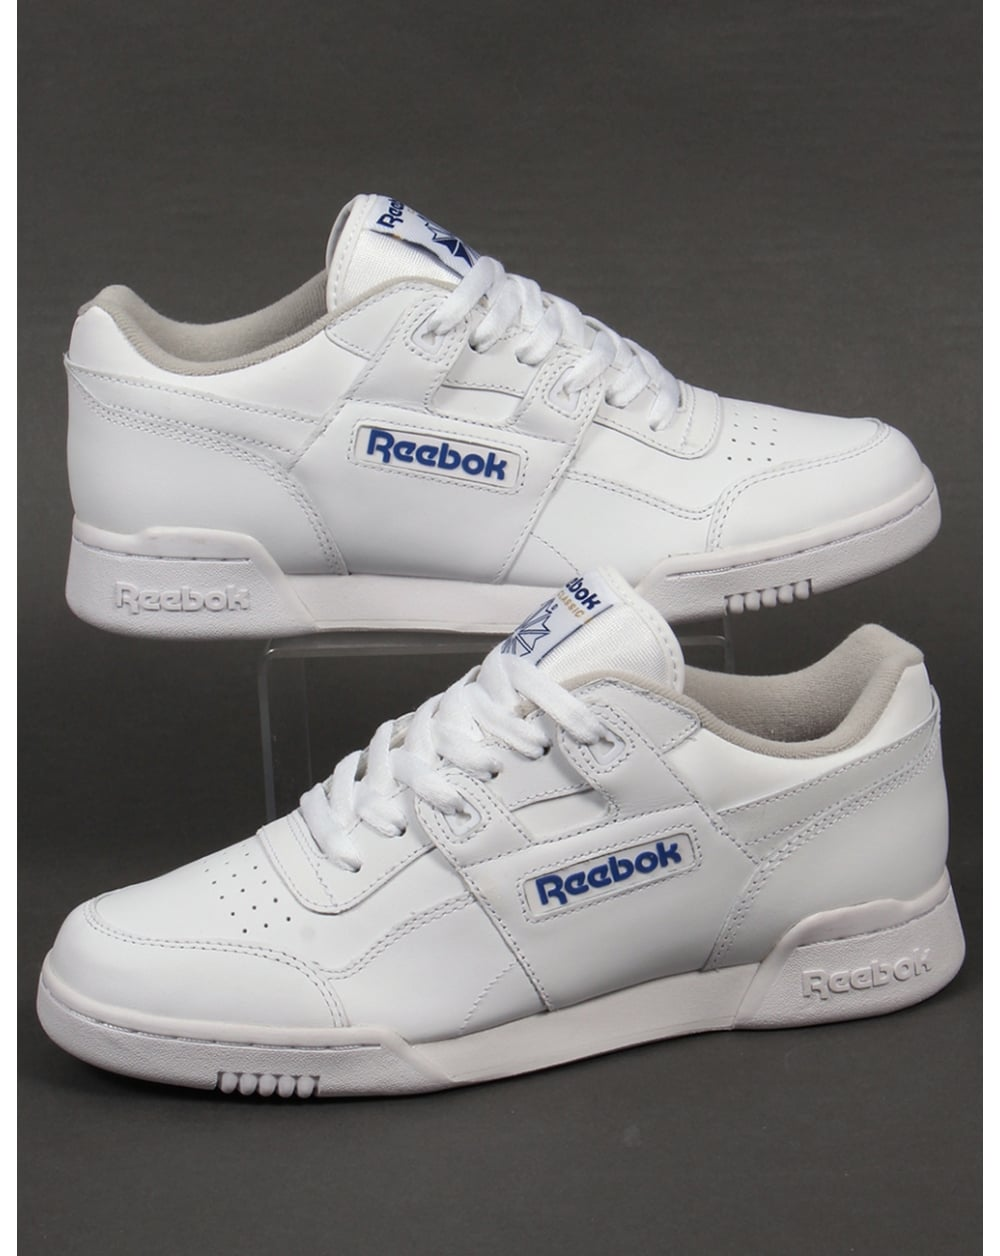 859f5a840ba Reebok Reebok Workout Plus Trainers White